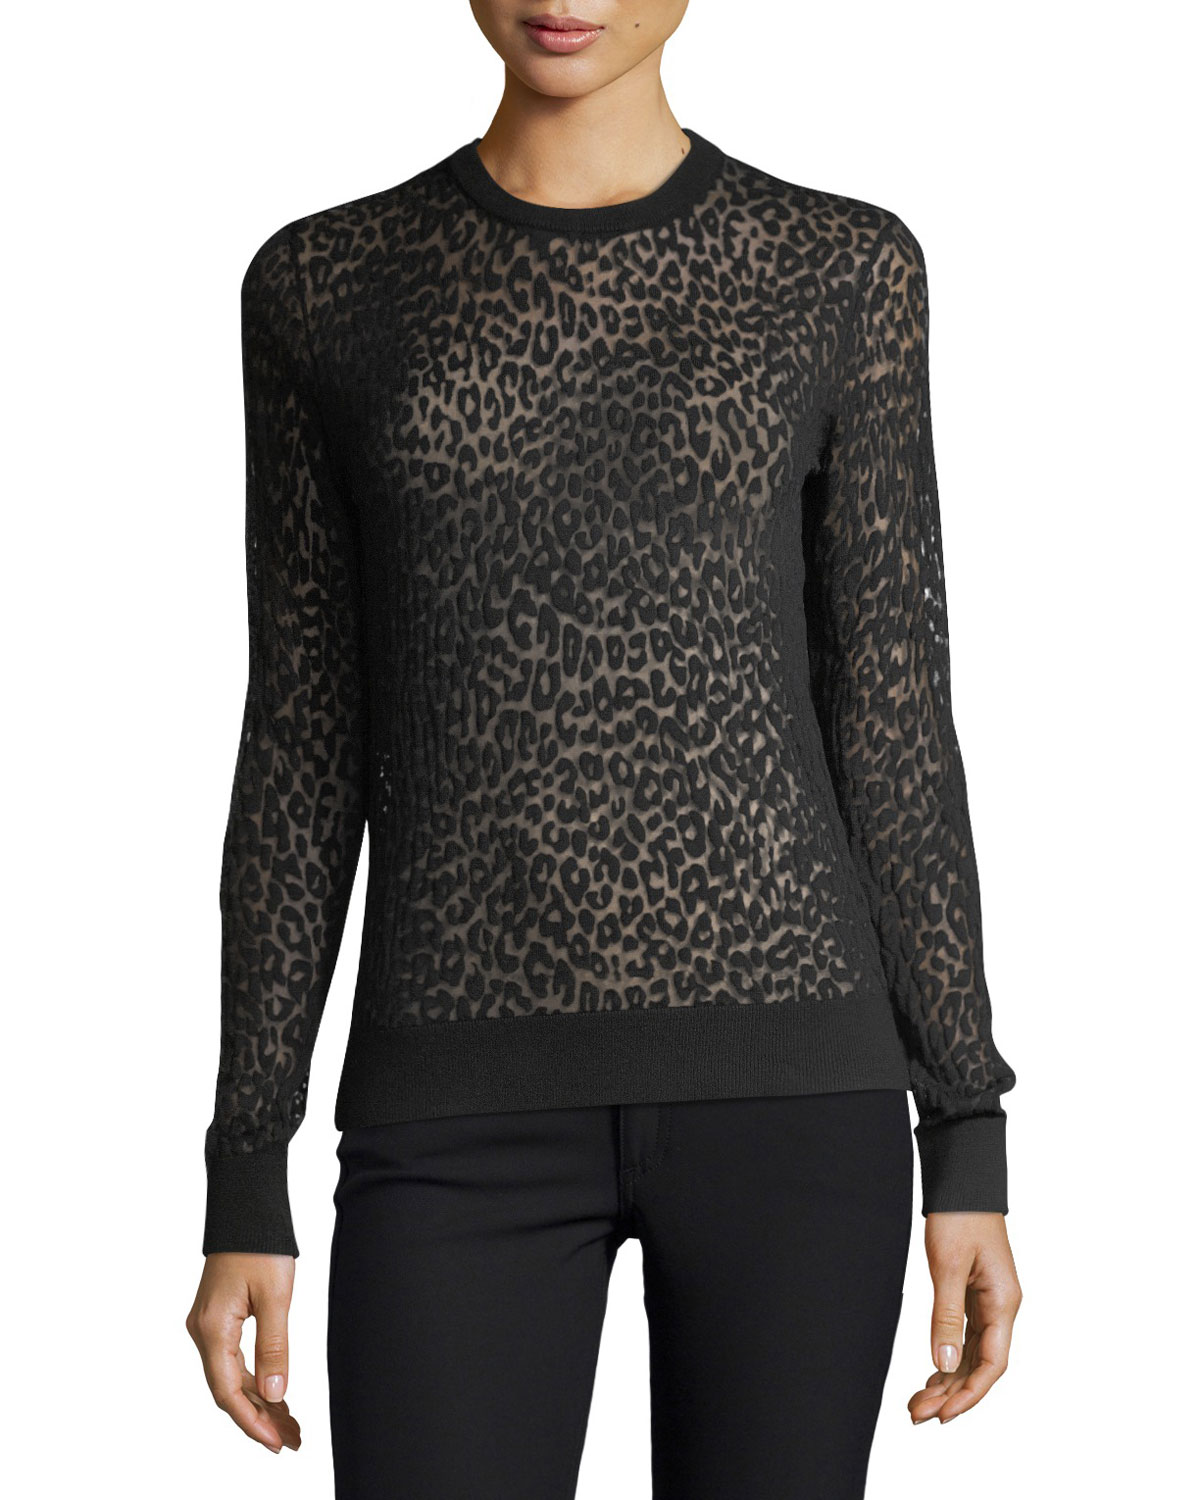 Burnout Leopard-Print Top